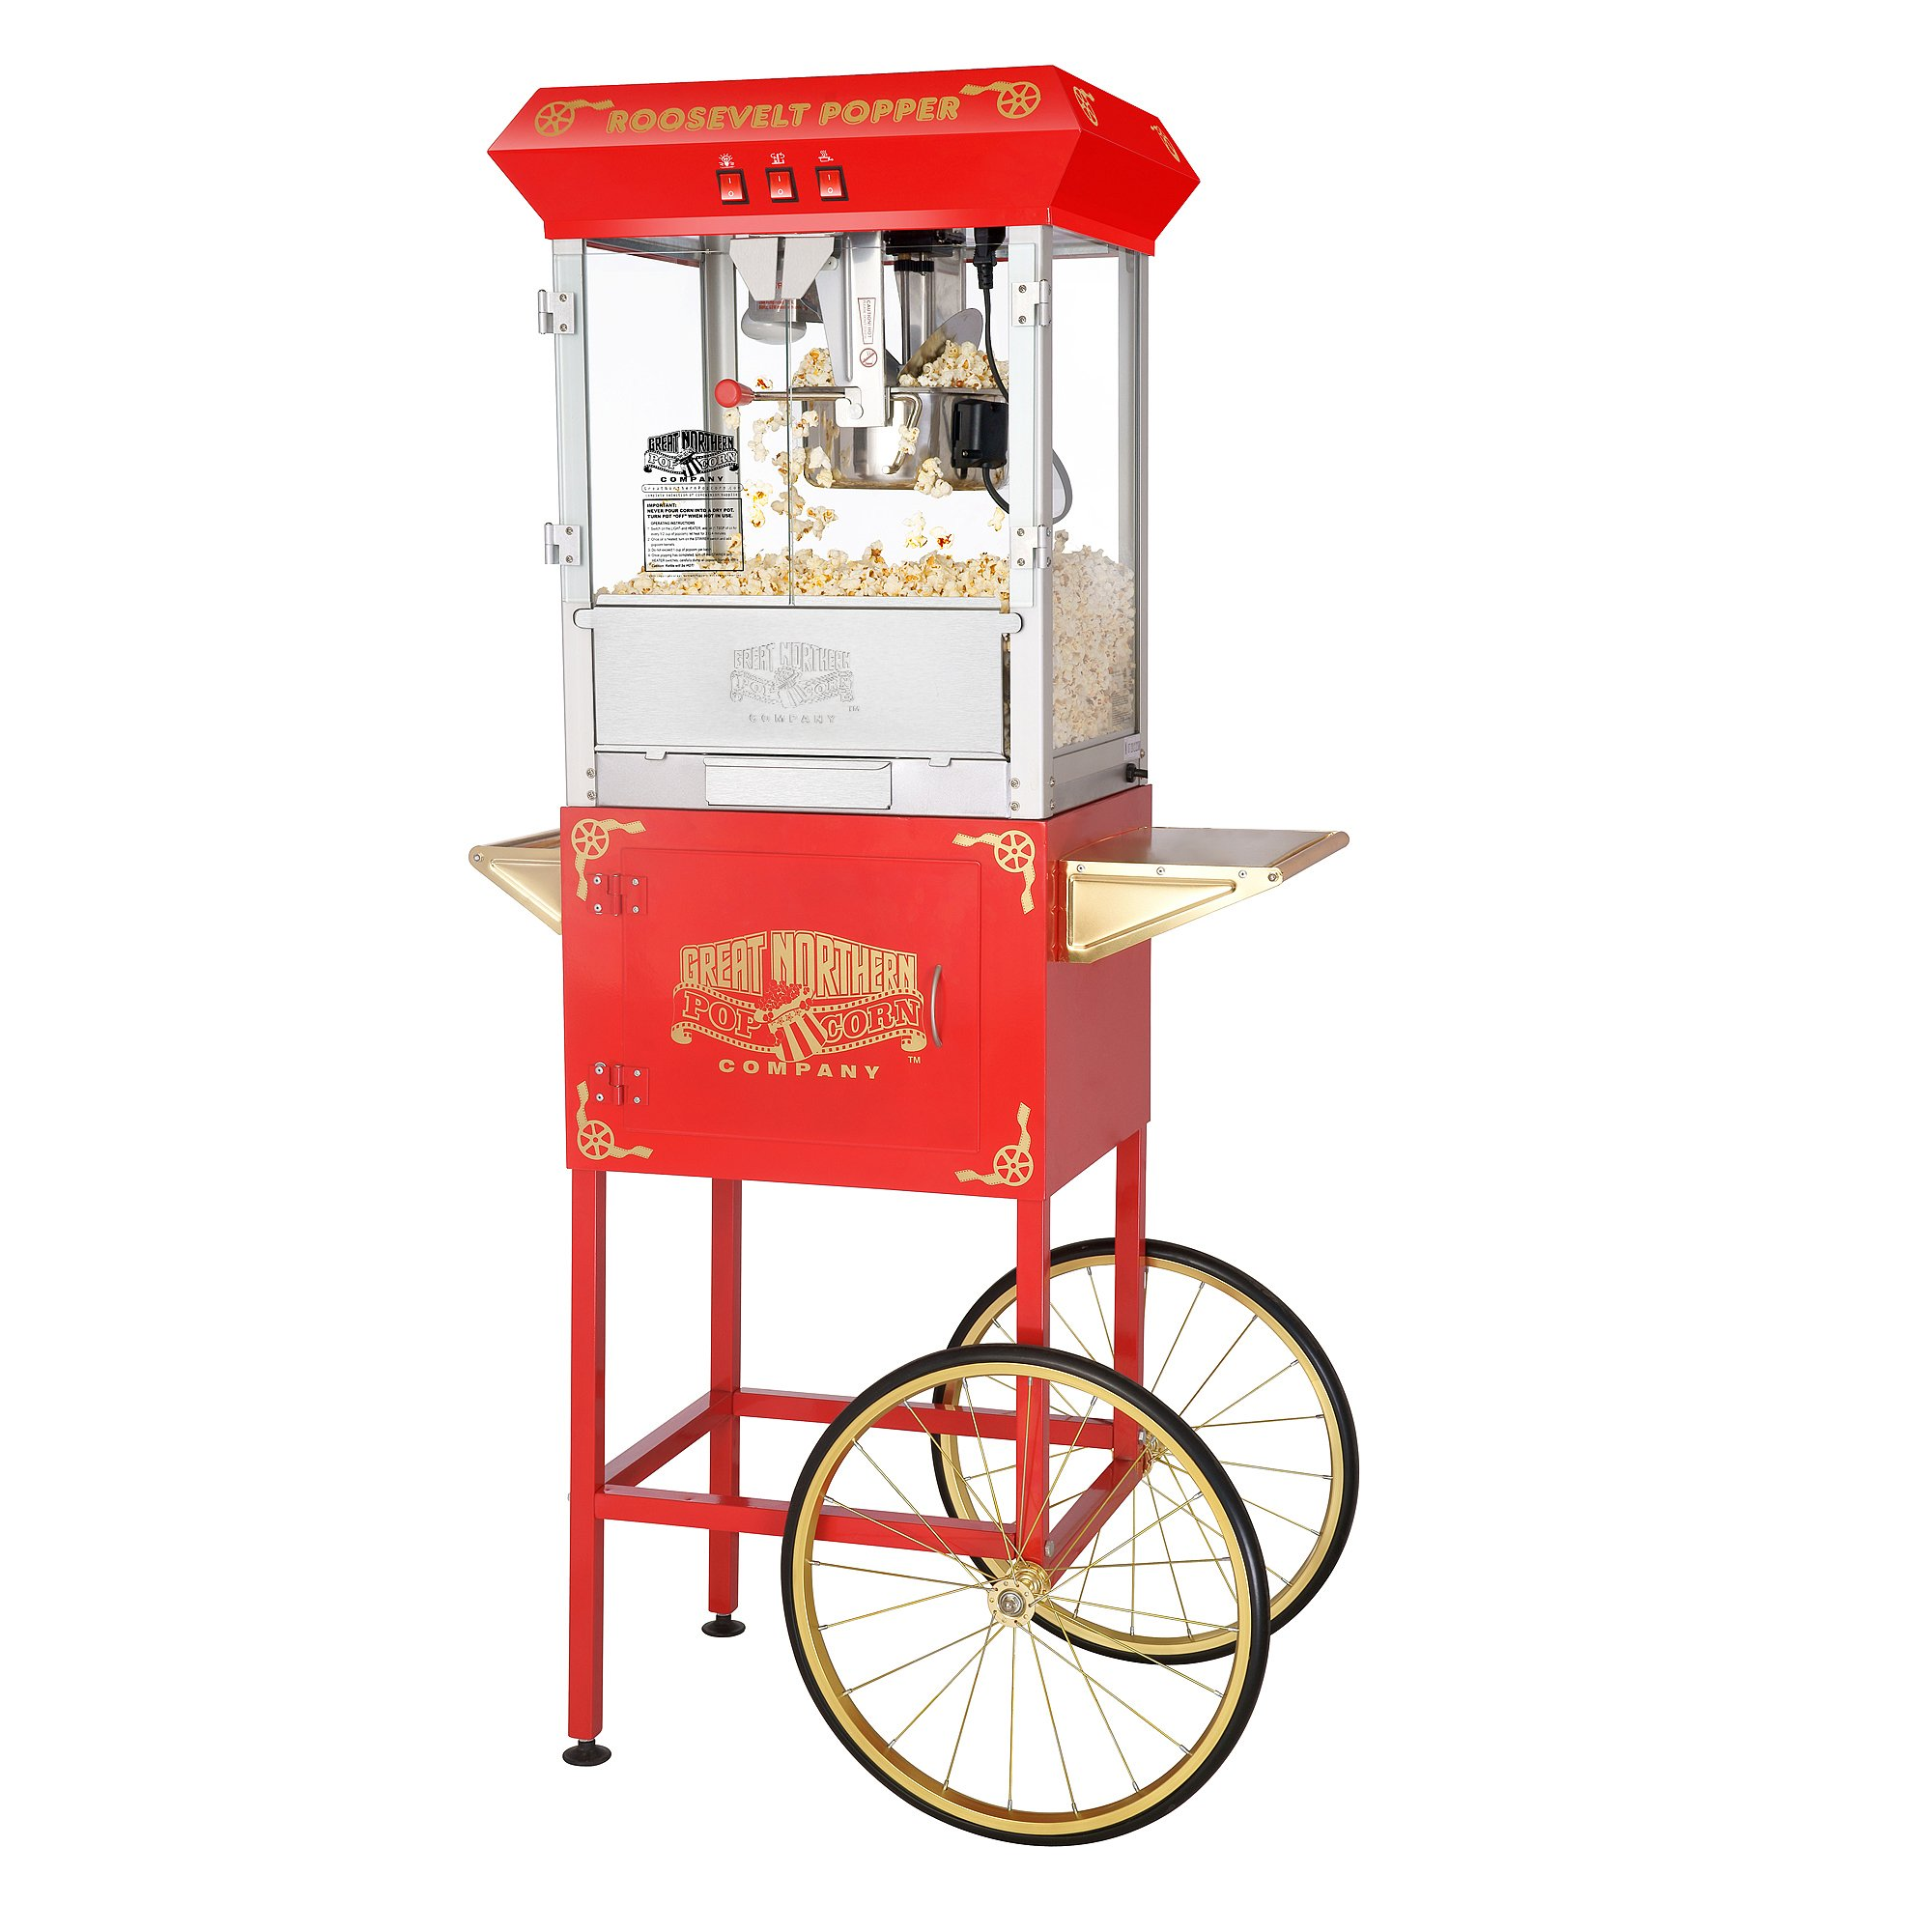 Great Northern Popcorn Red Roosevelt 8 Ounce Antique Popcorn Machine and Cart